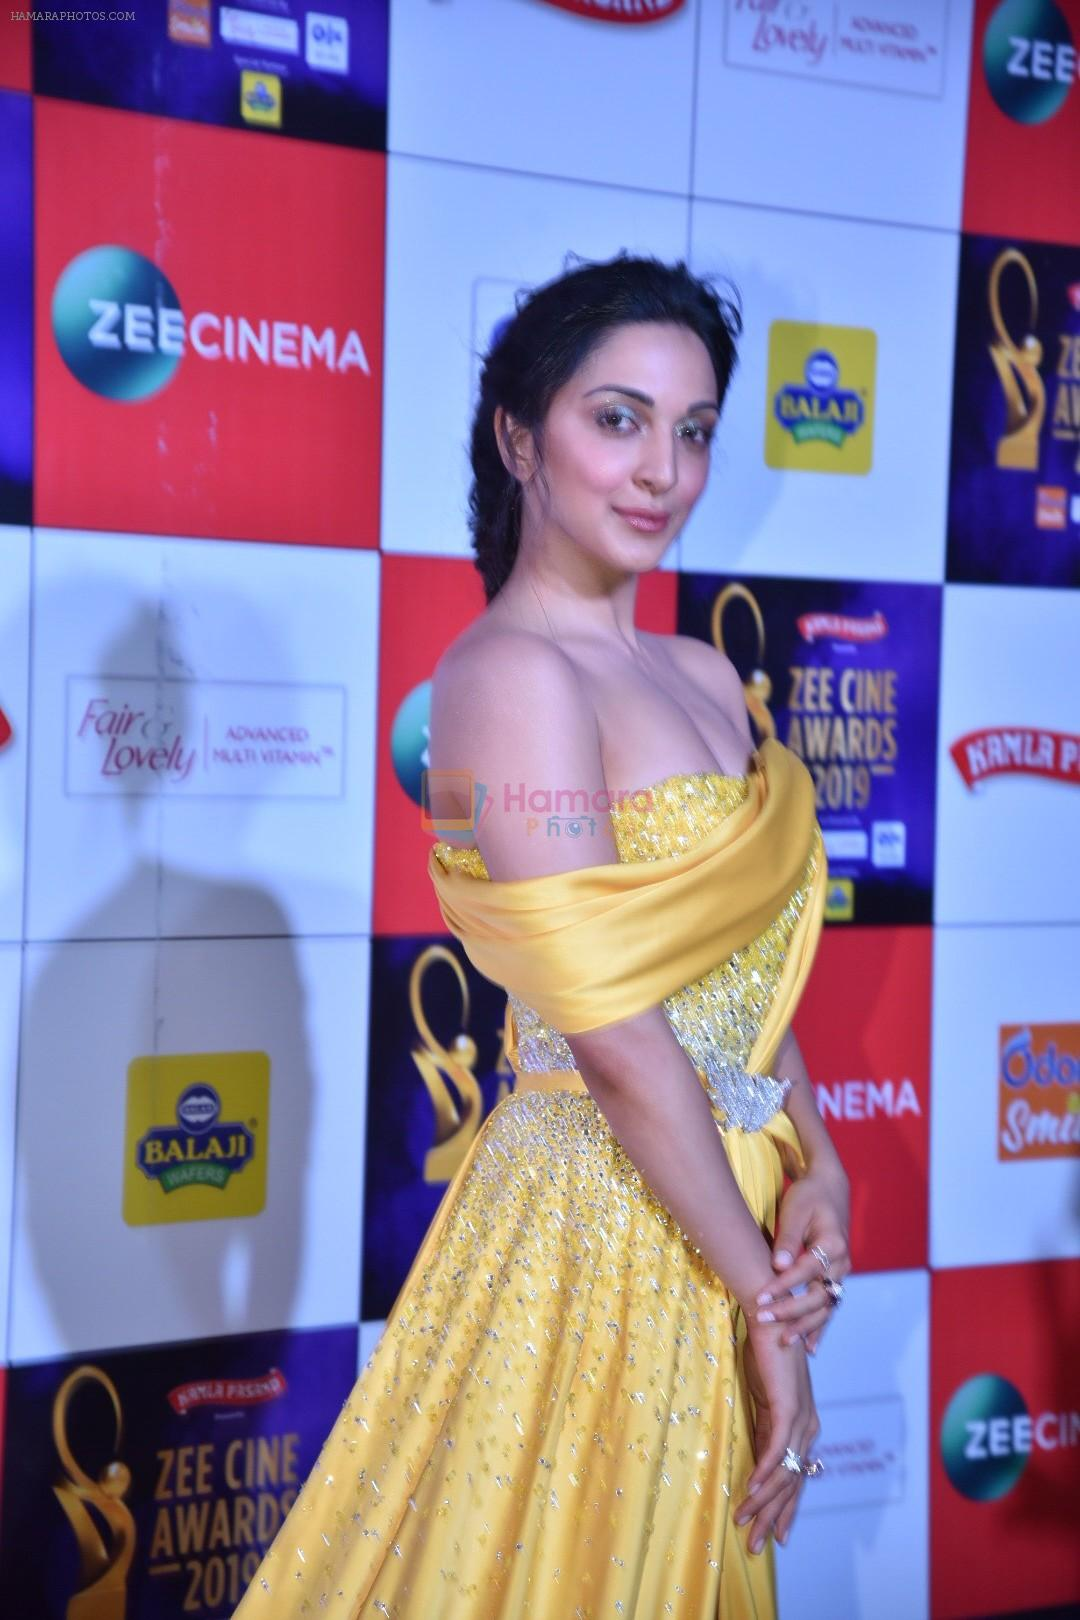 Kiara Advani at Zee cine awards red carpet on 19th March 2019